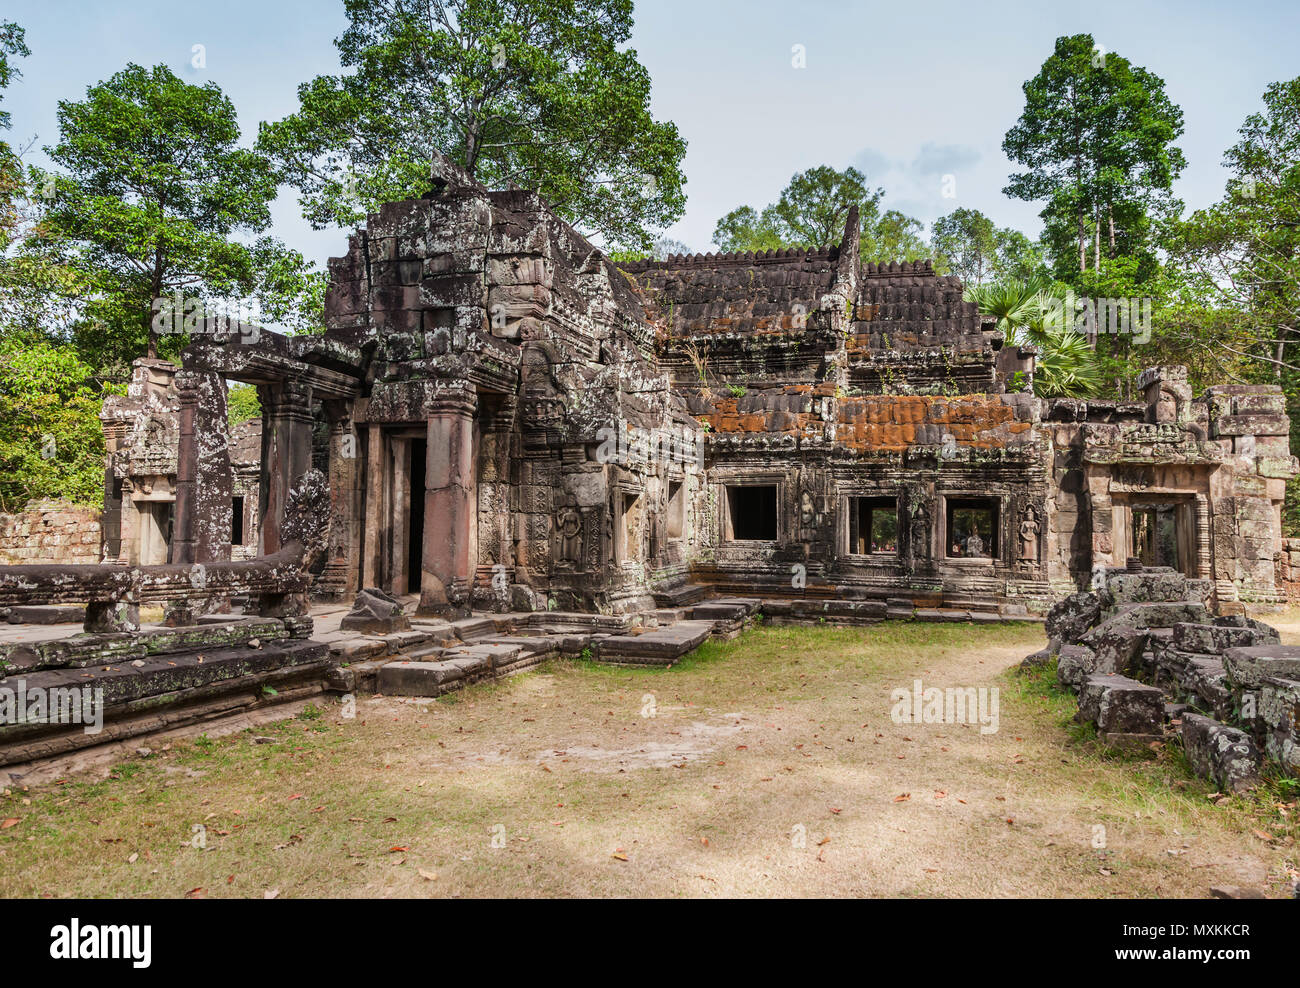 SIEM REAP - JANUARY 04, 2015: Historic ruins with ornate stone carvings of Ta Prohm Temple at Angkor complex on january 04, 2015 in Siem Reap, Cambodi - Stock Image